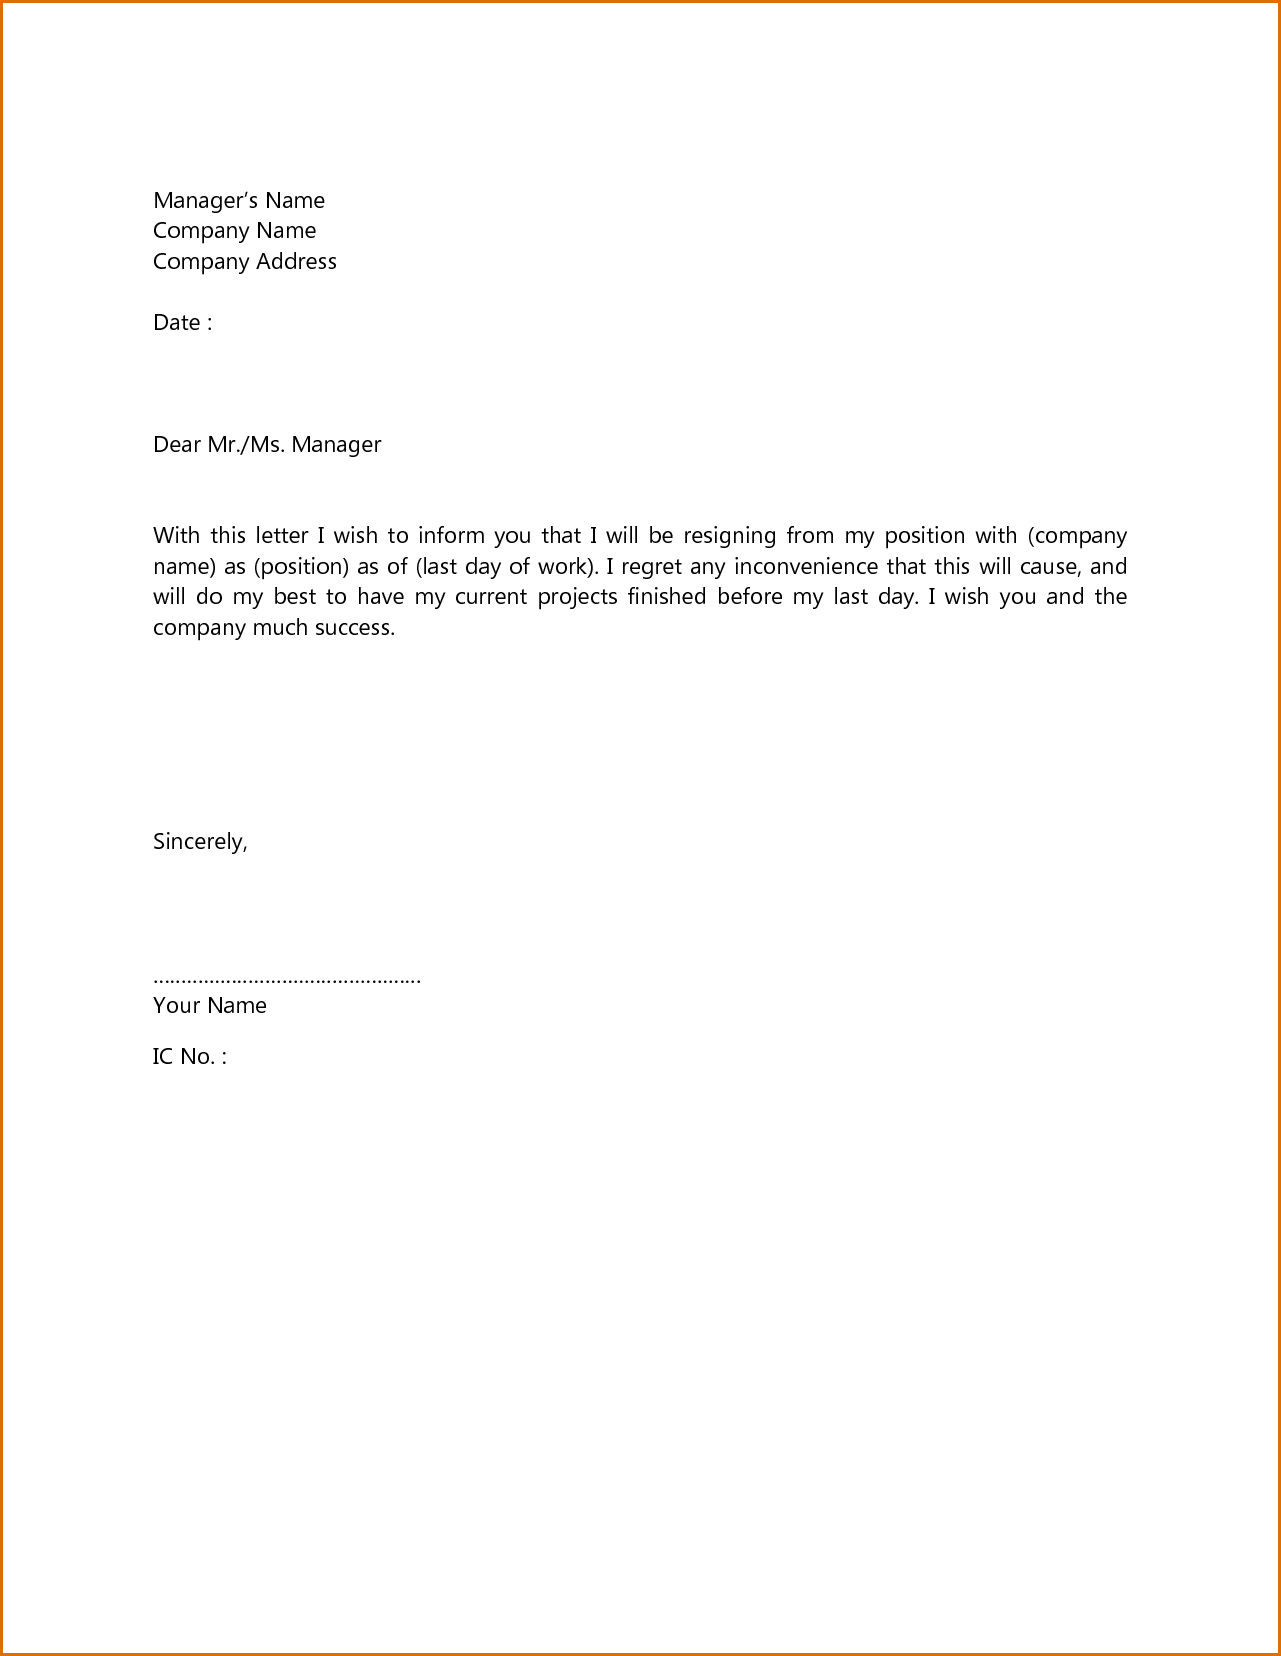 Termination Letter Sample Singapore Formal Resignation Cover